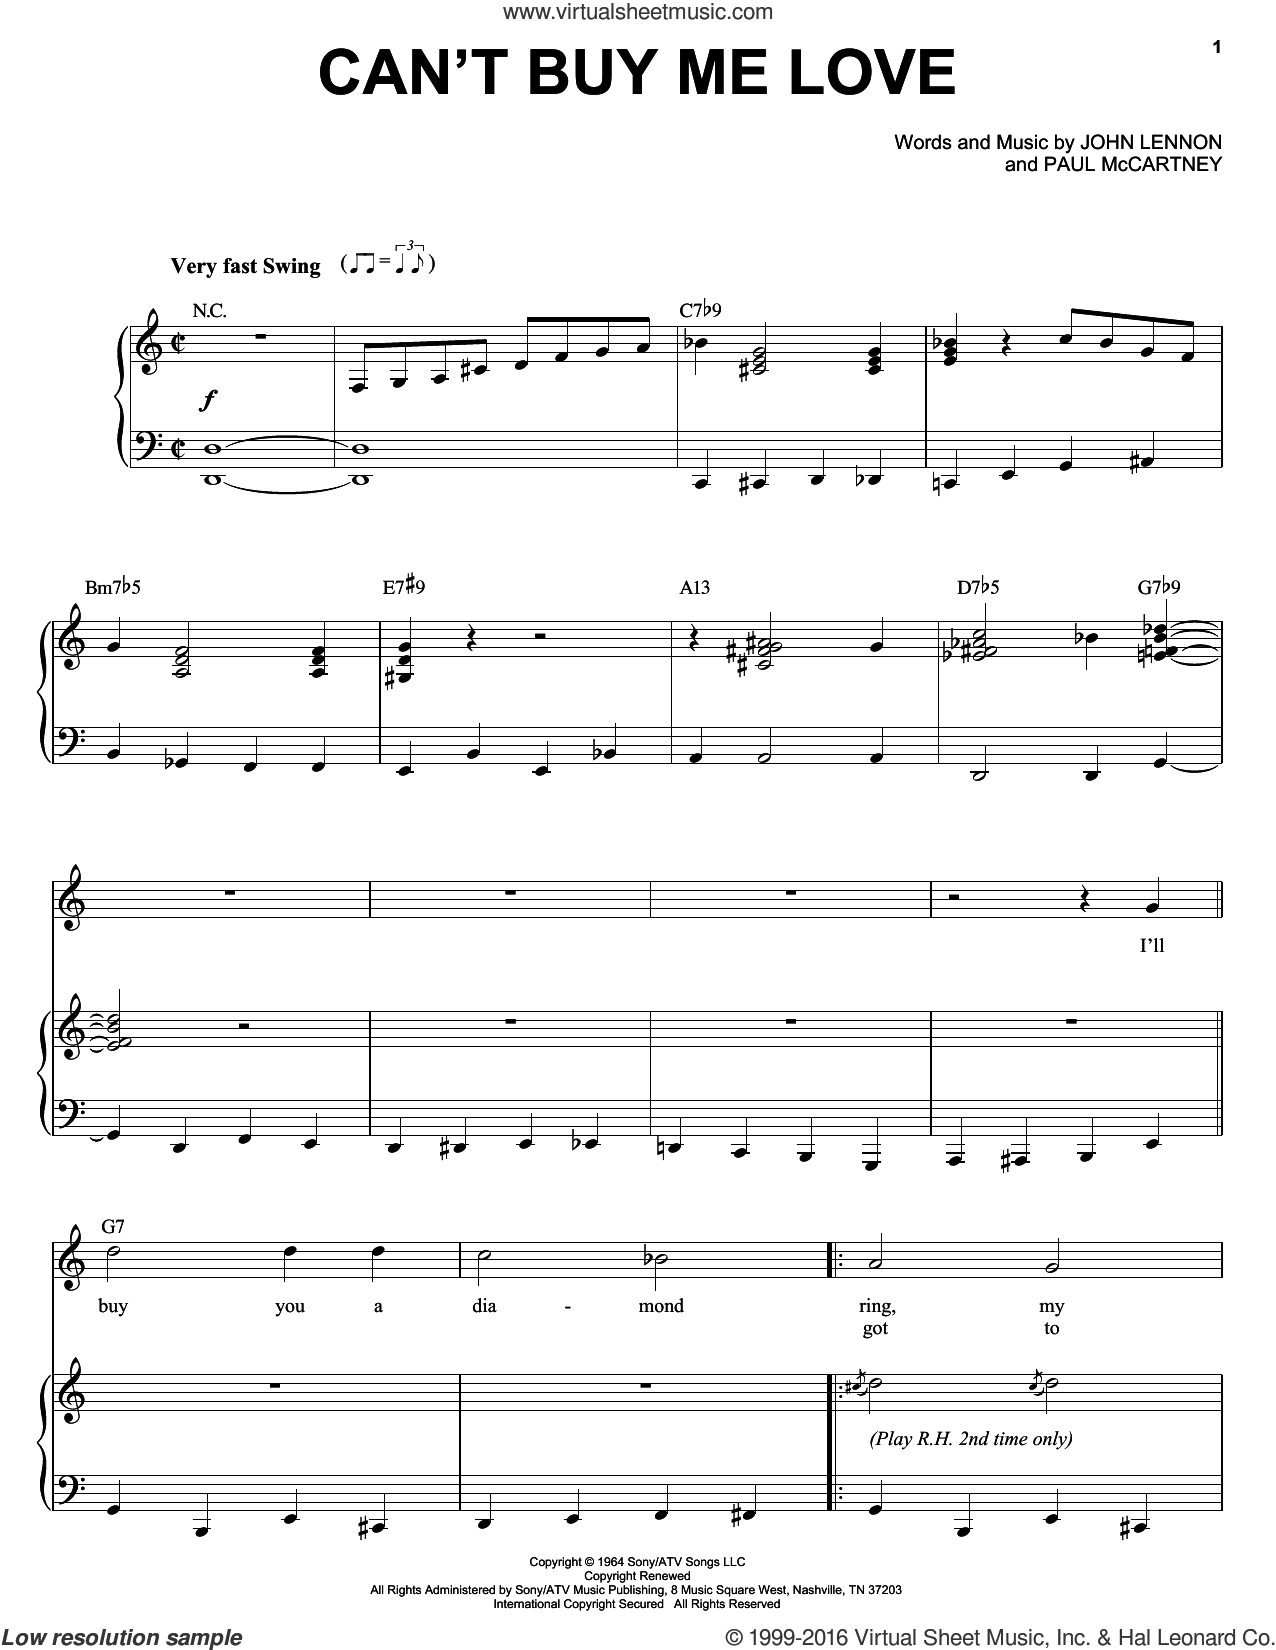 Can't Buy Me Love sheet music for voice and piano by Michael Buble, The Beatles, John Lennon and Paul McCartney, intermediate skill level